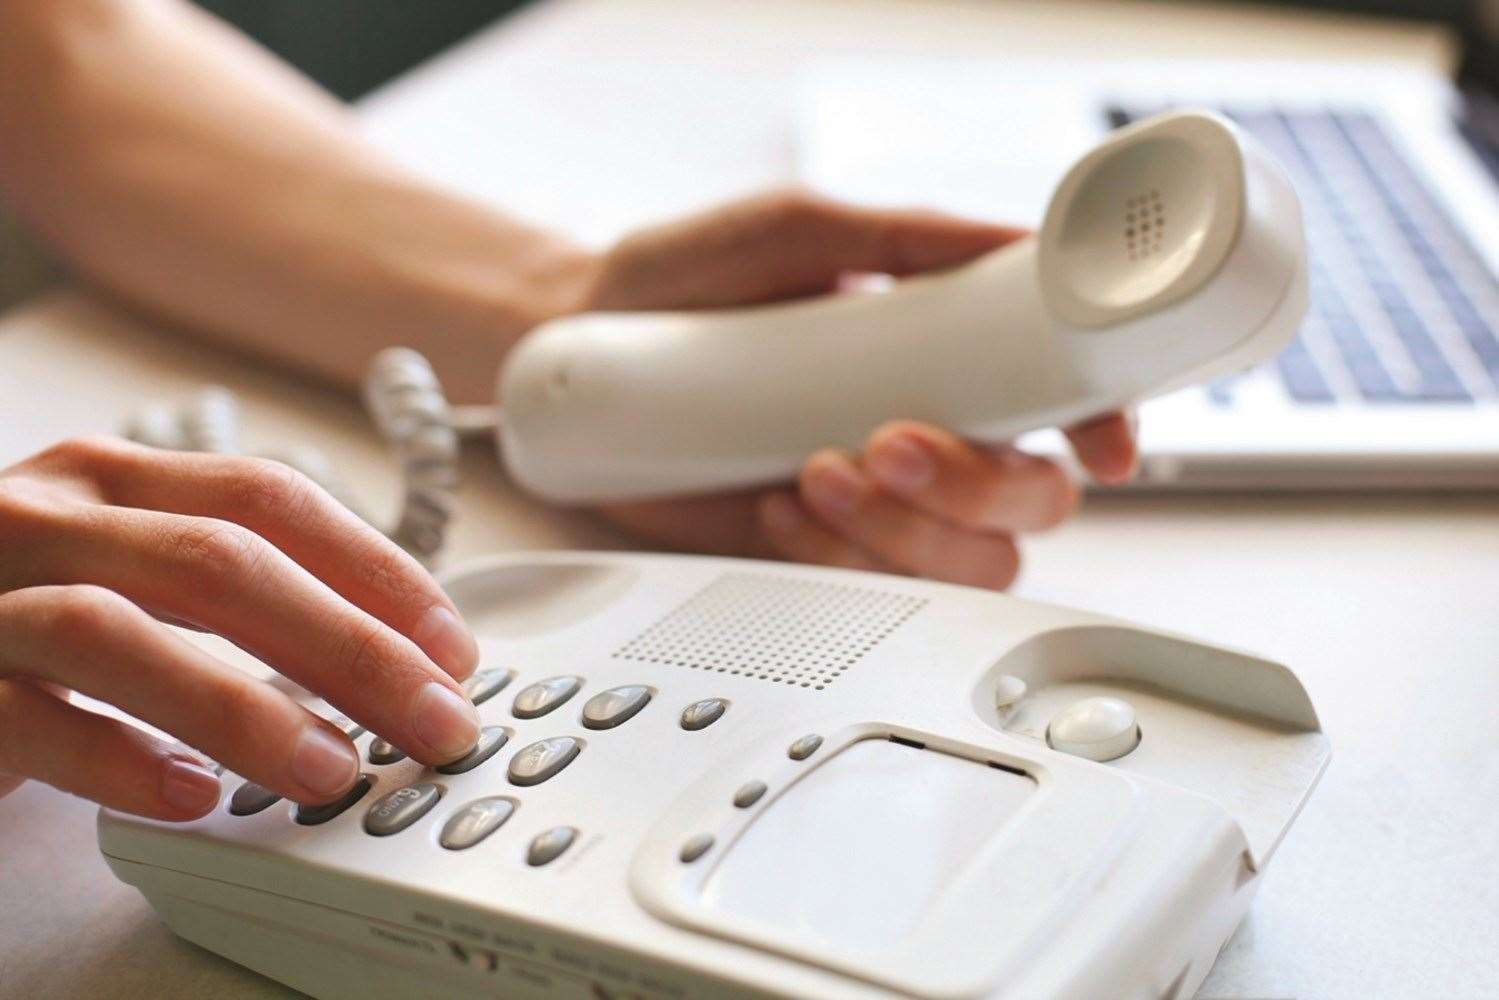 The callers put pressure on people over the phone. Stock photo